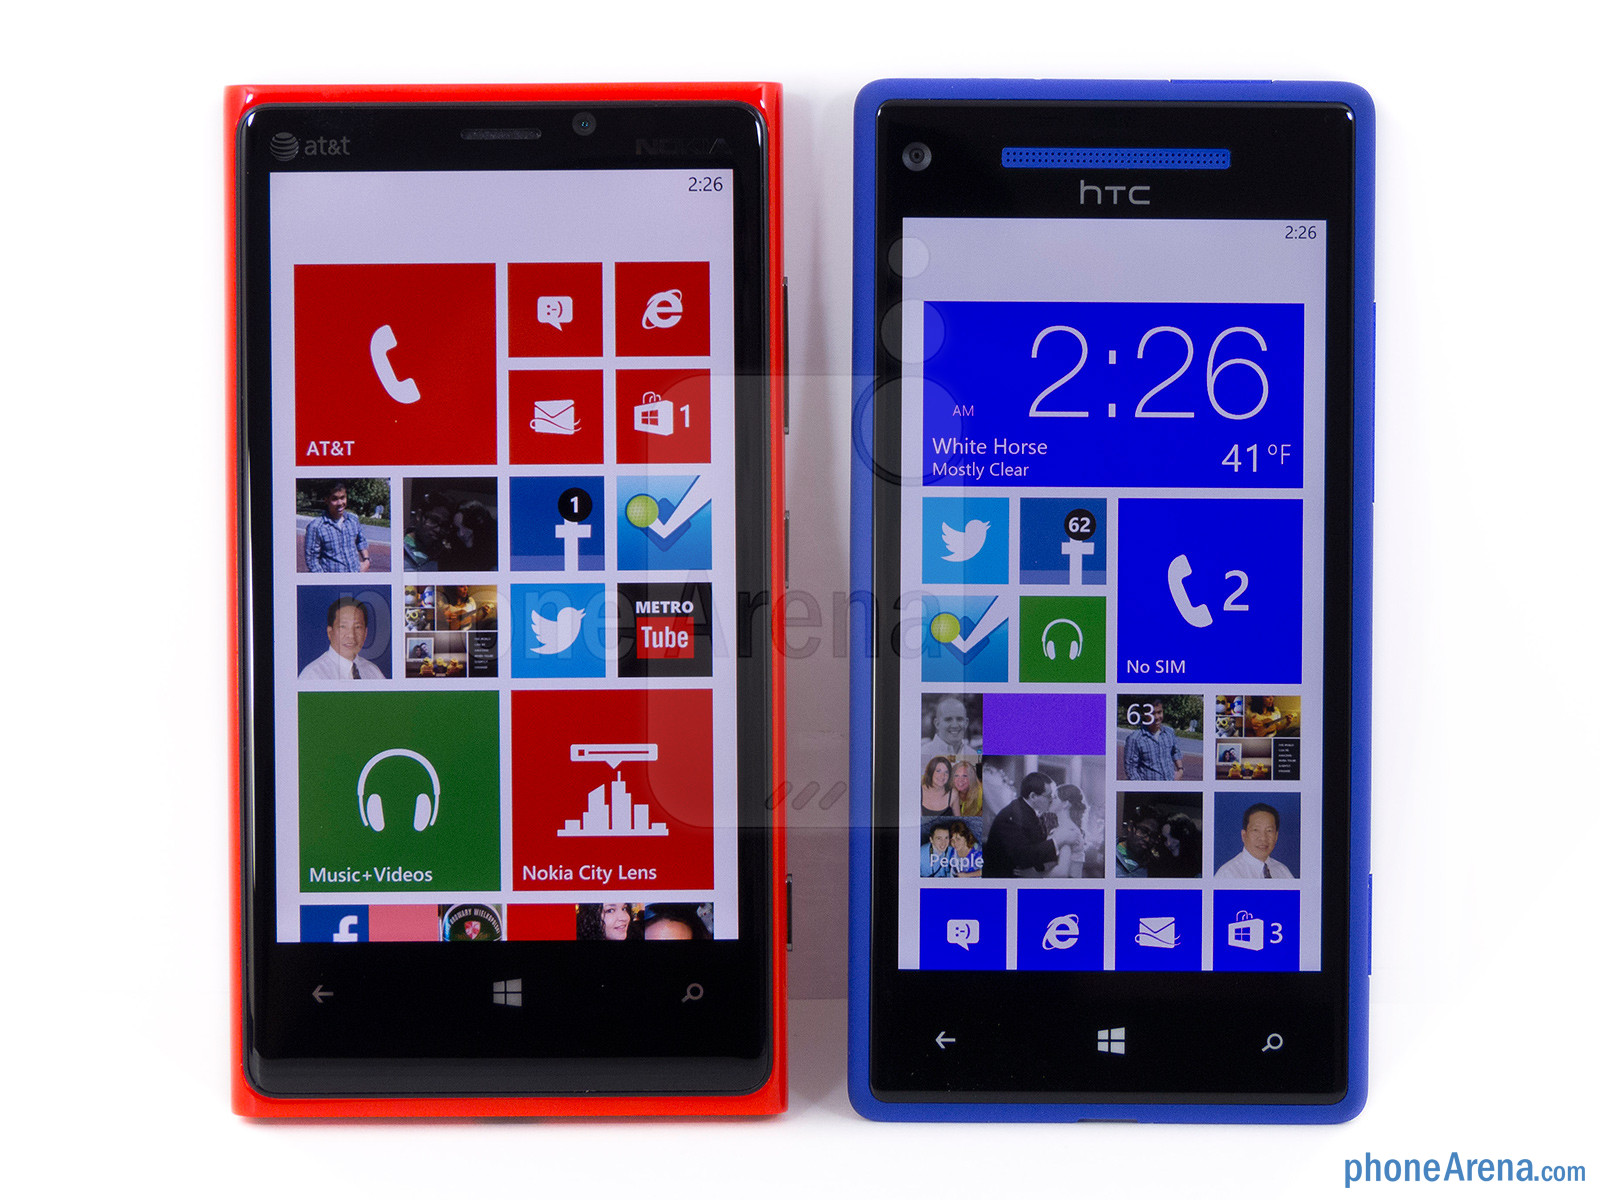 lumia 920 vs htc 8x